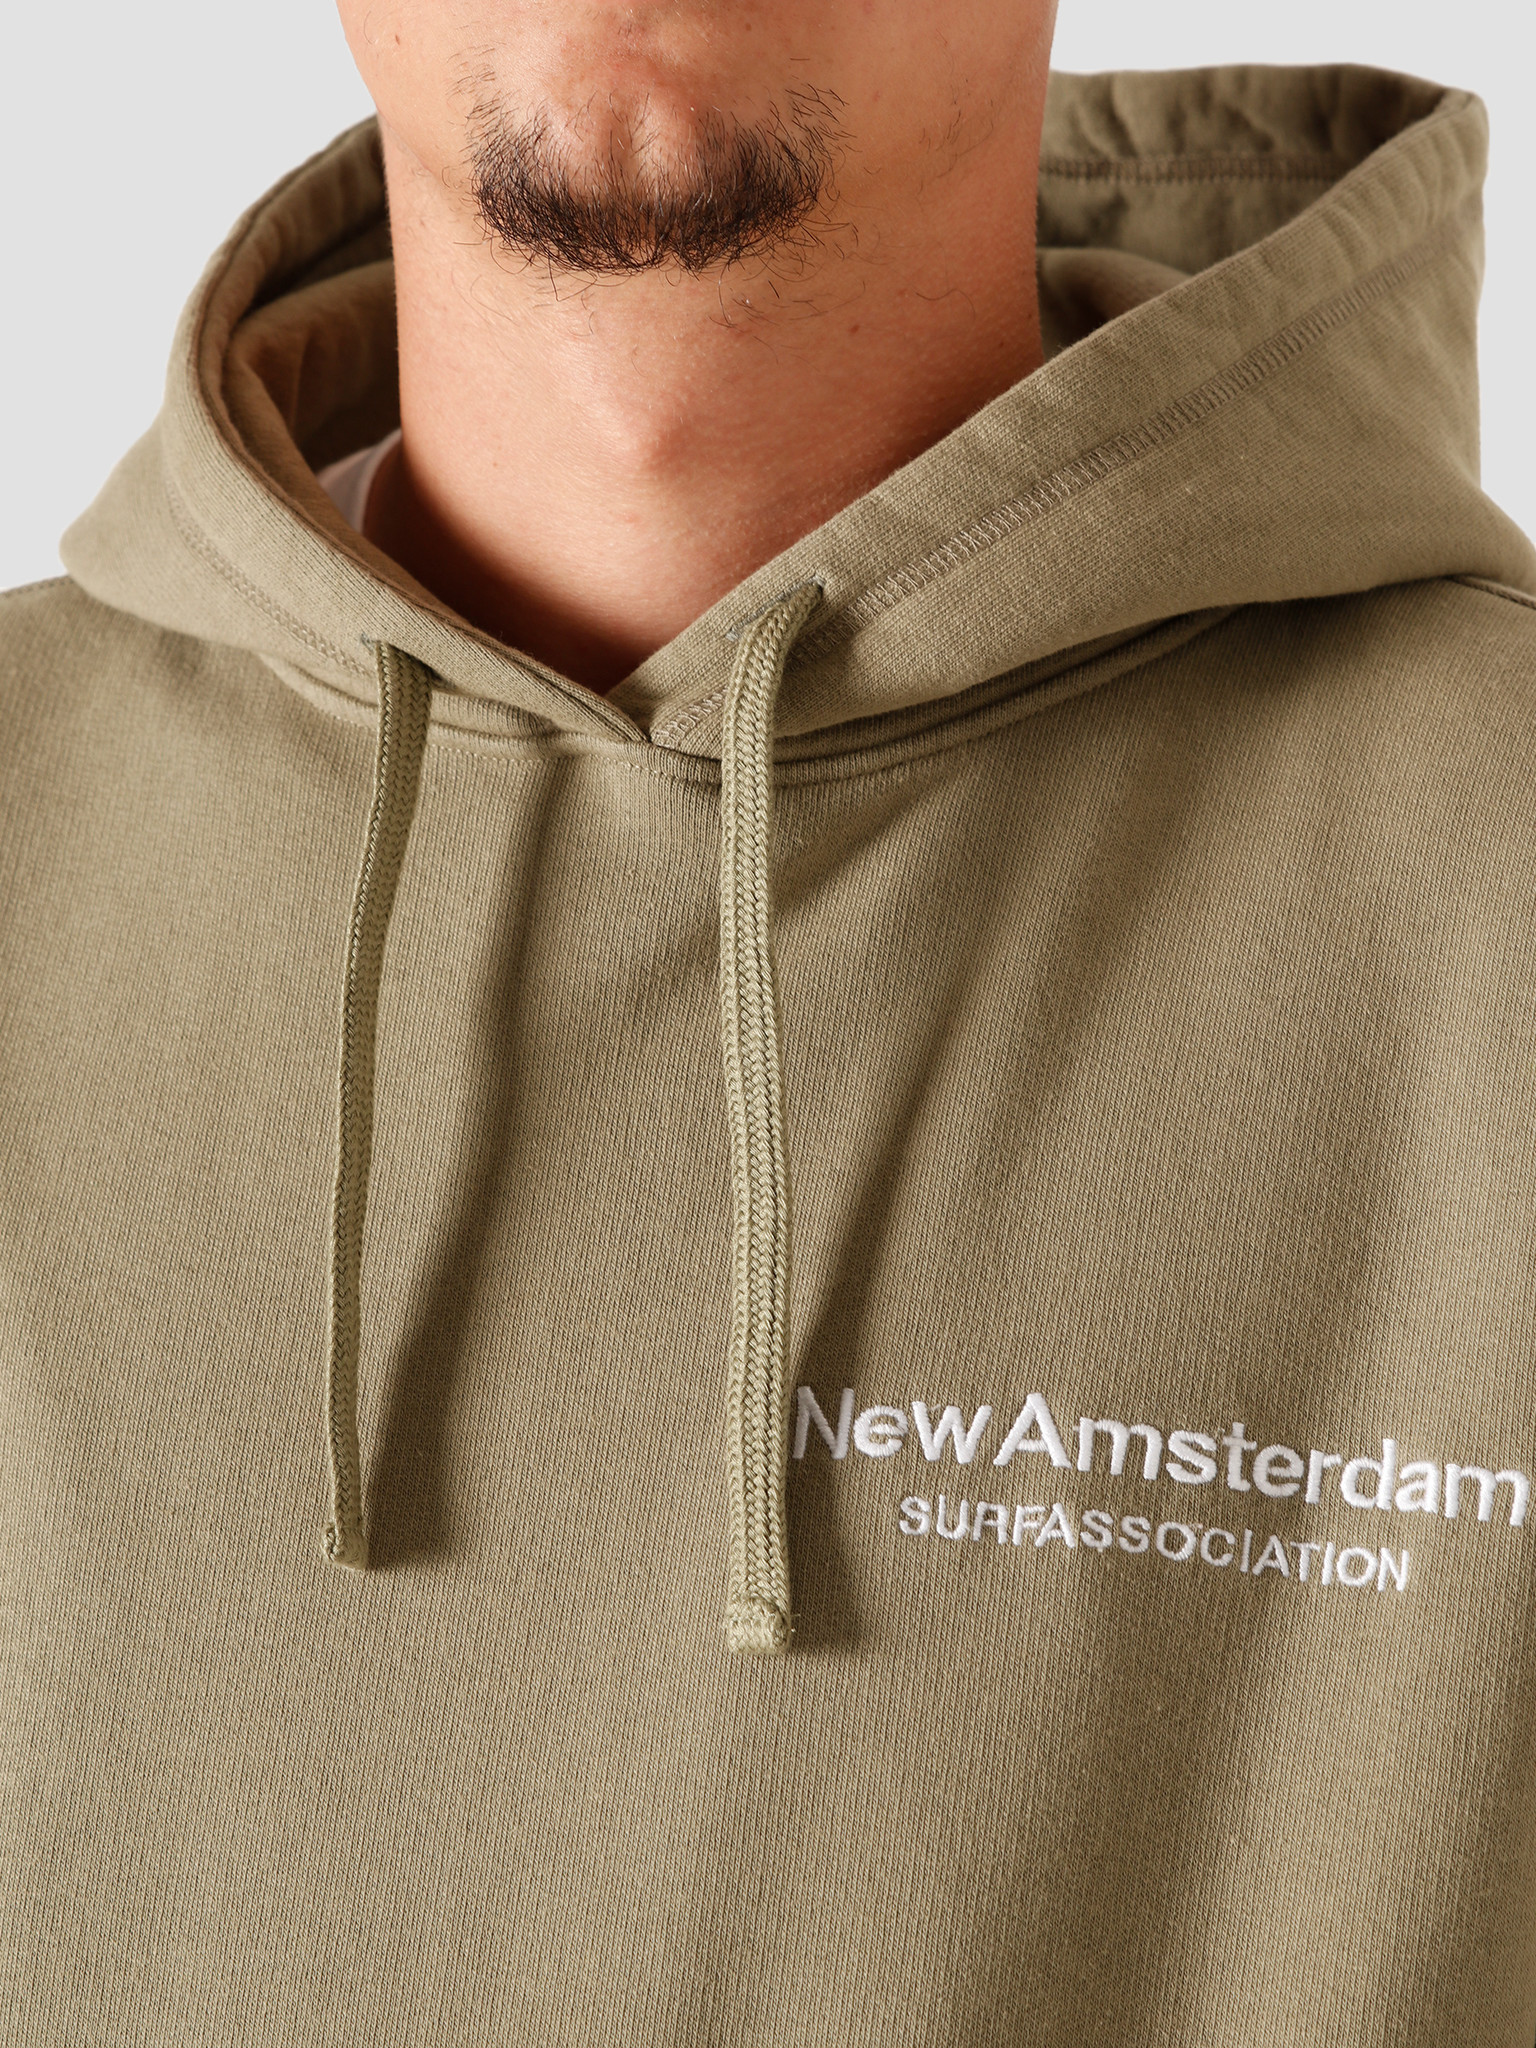 New Amsterdam Surf association New Amsterdam Surf association Logo Hoodie Aloe 2020067